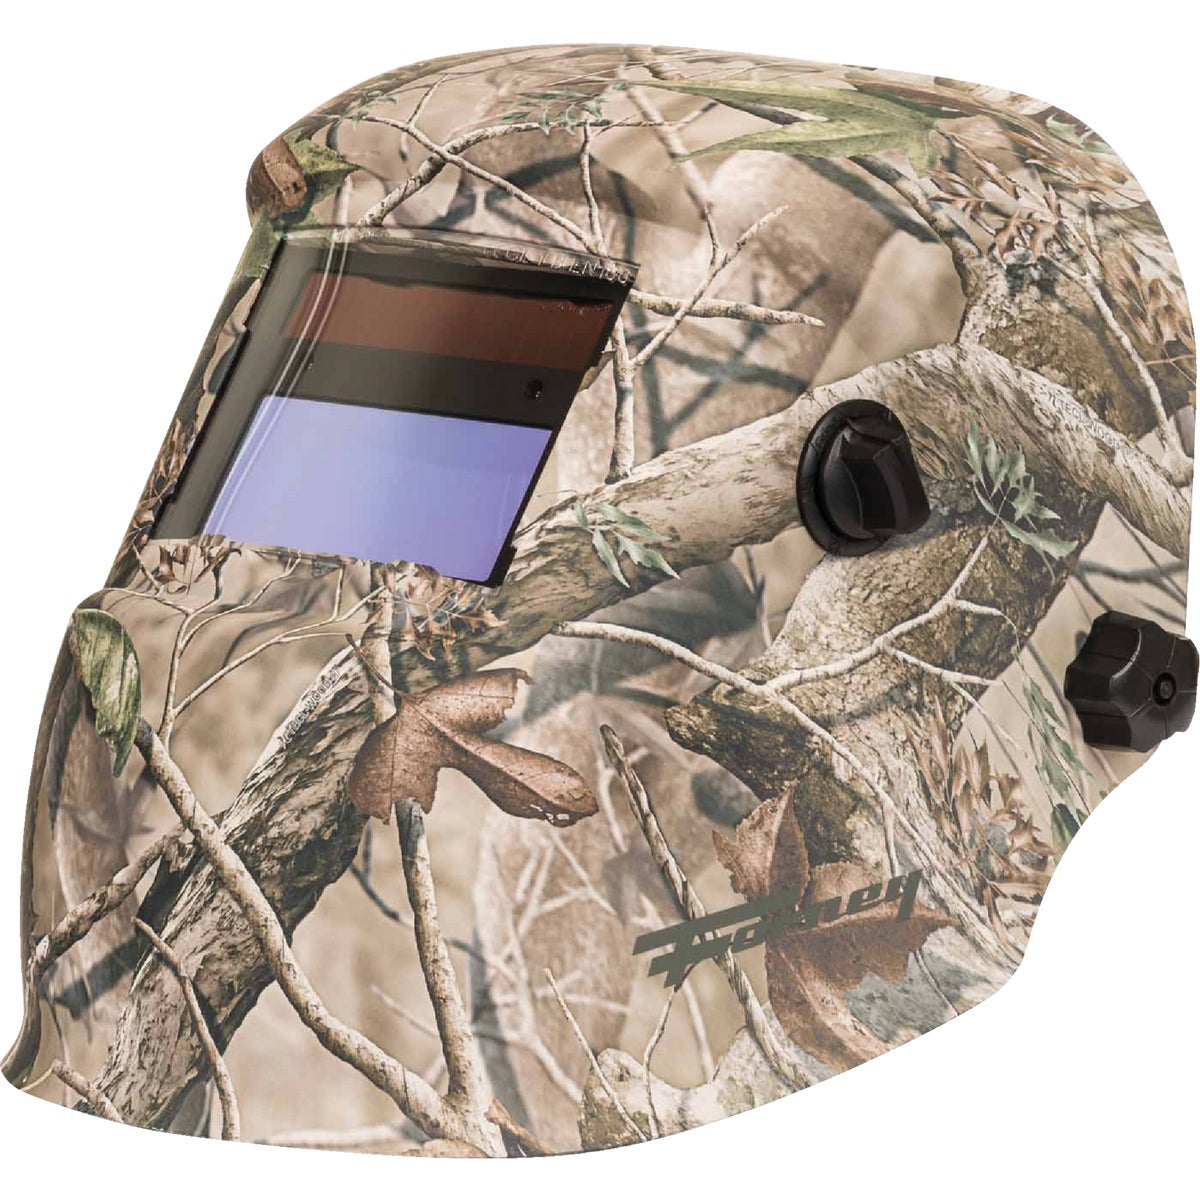 CAMO AD WELDING HELMET - 55652 by Forney Industries